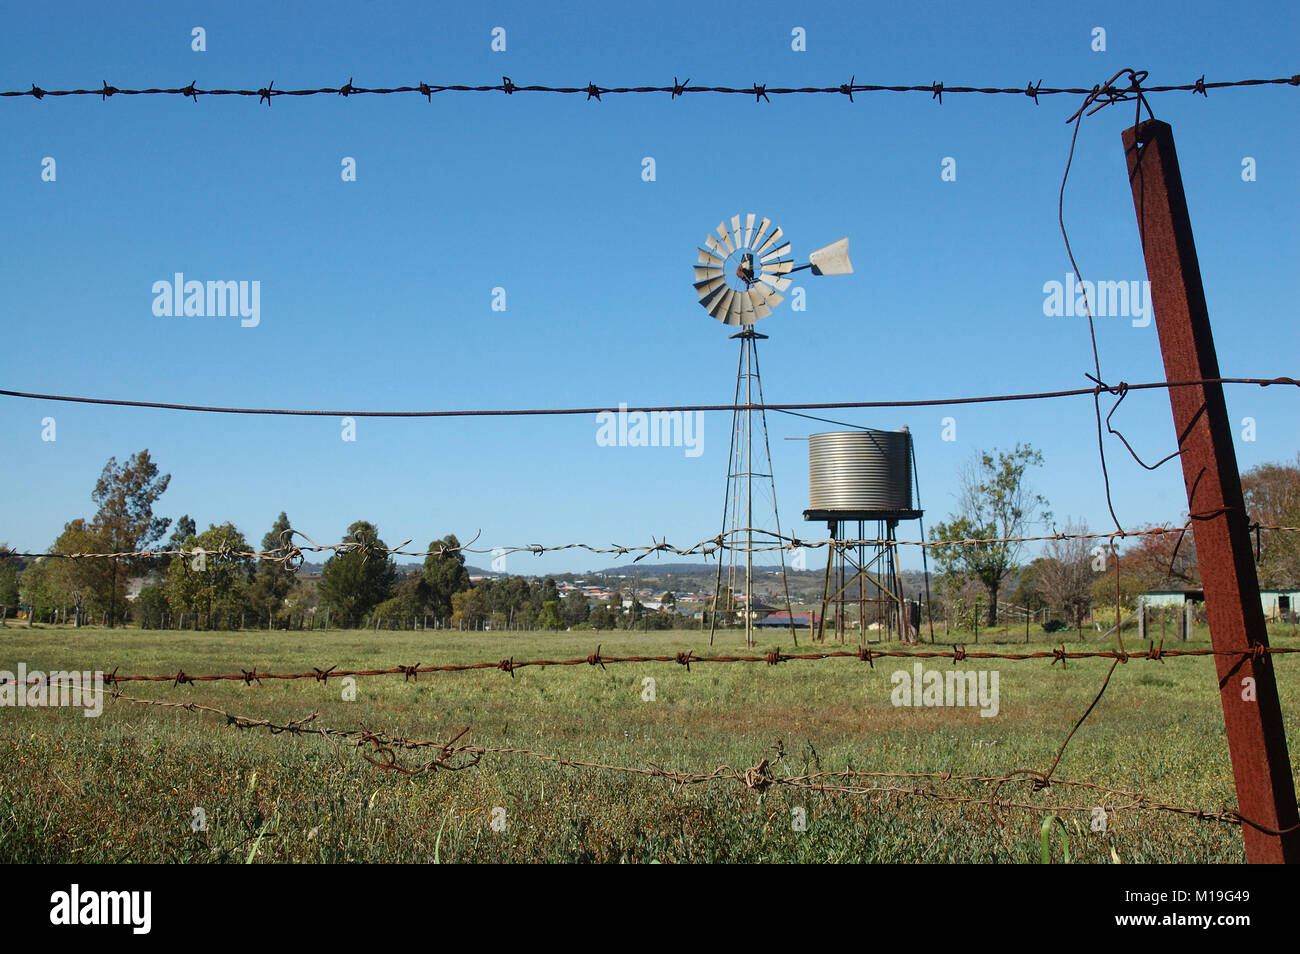 Windmill and tankstand in paddock, Queensland, Australia. Windmills are commonly used for pumping water from bores - Stock Image